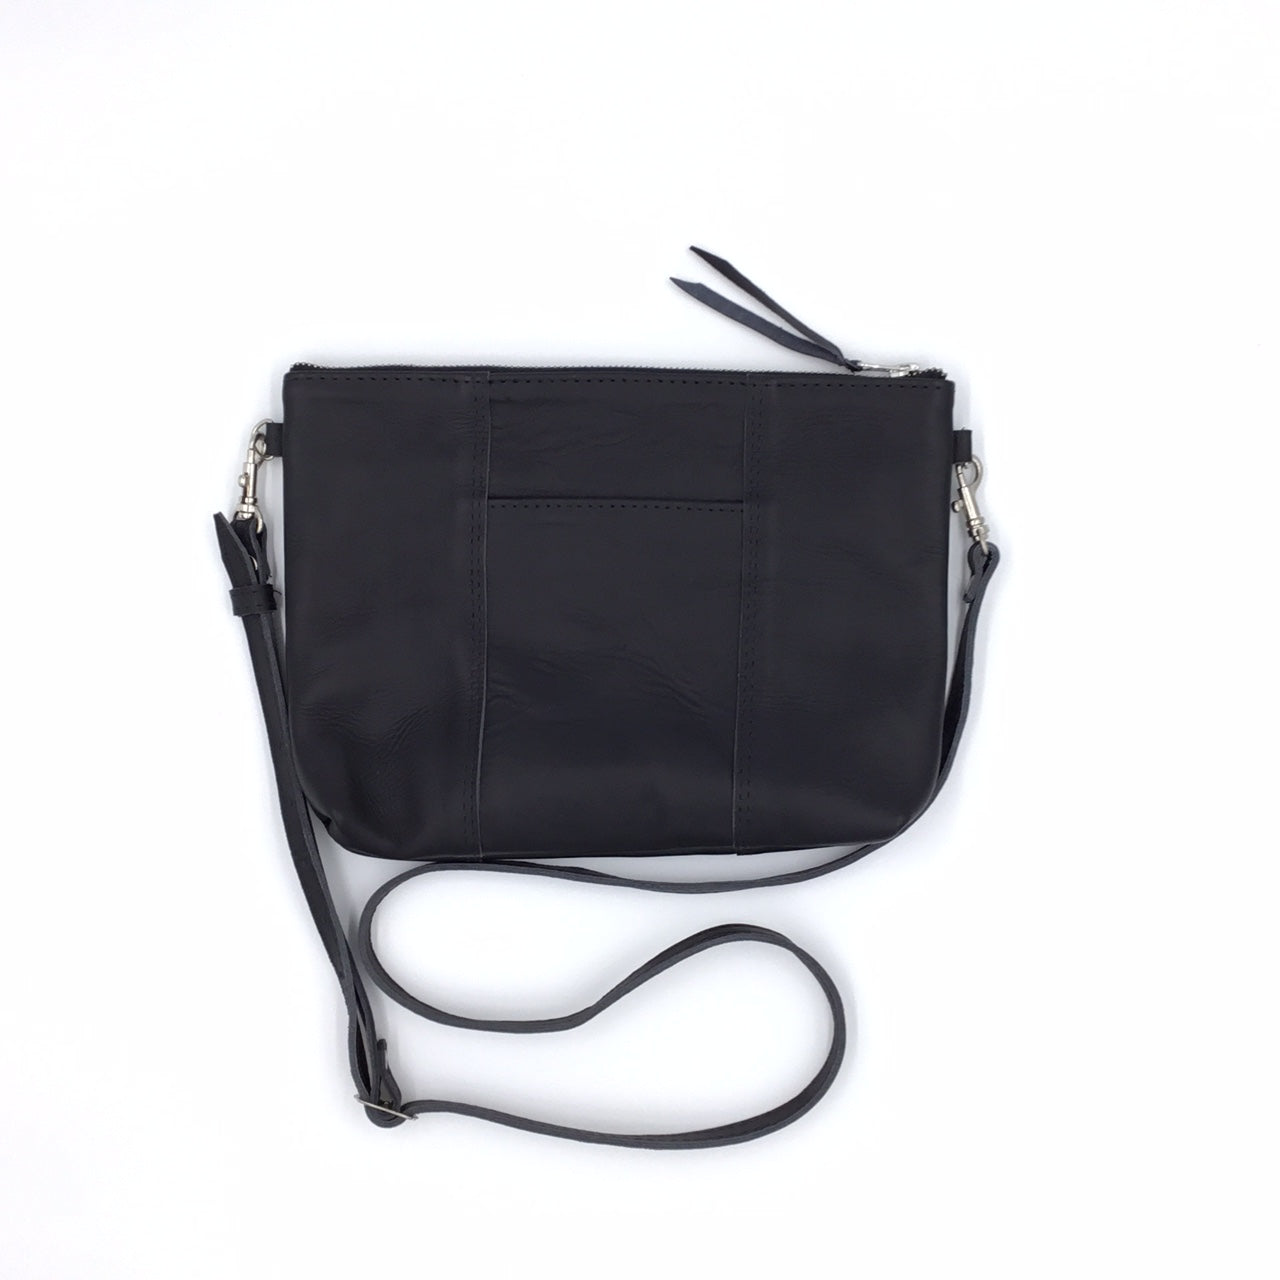 "NEW STYLE! Antigua Black Leather Cross Body Clutch with front pocket, silver hardware  (1"" base)"